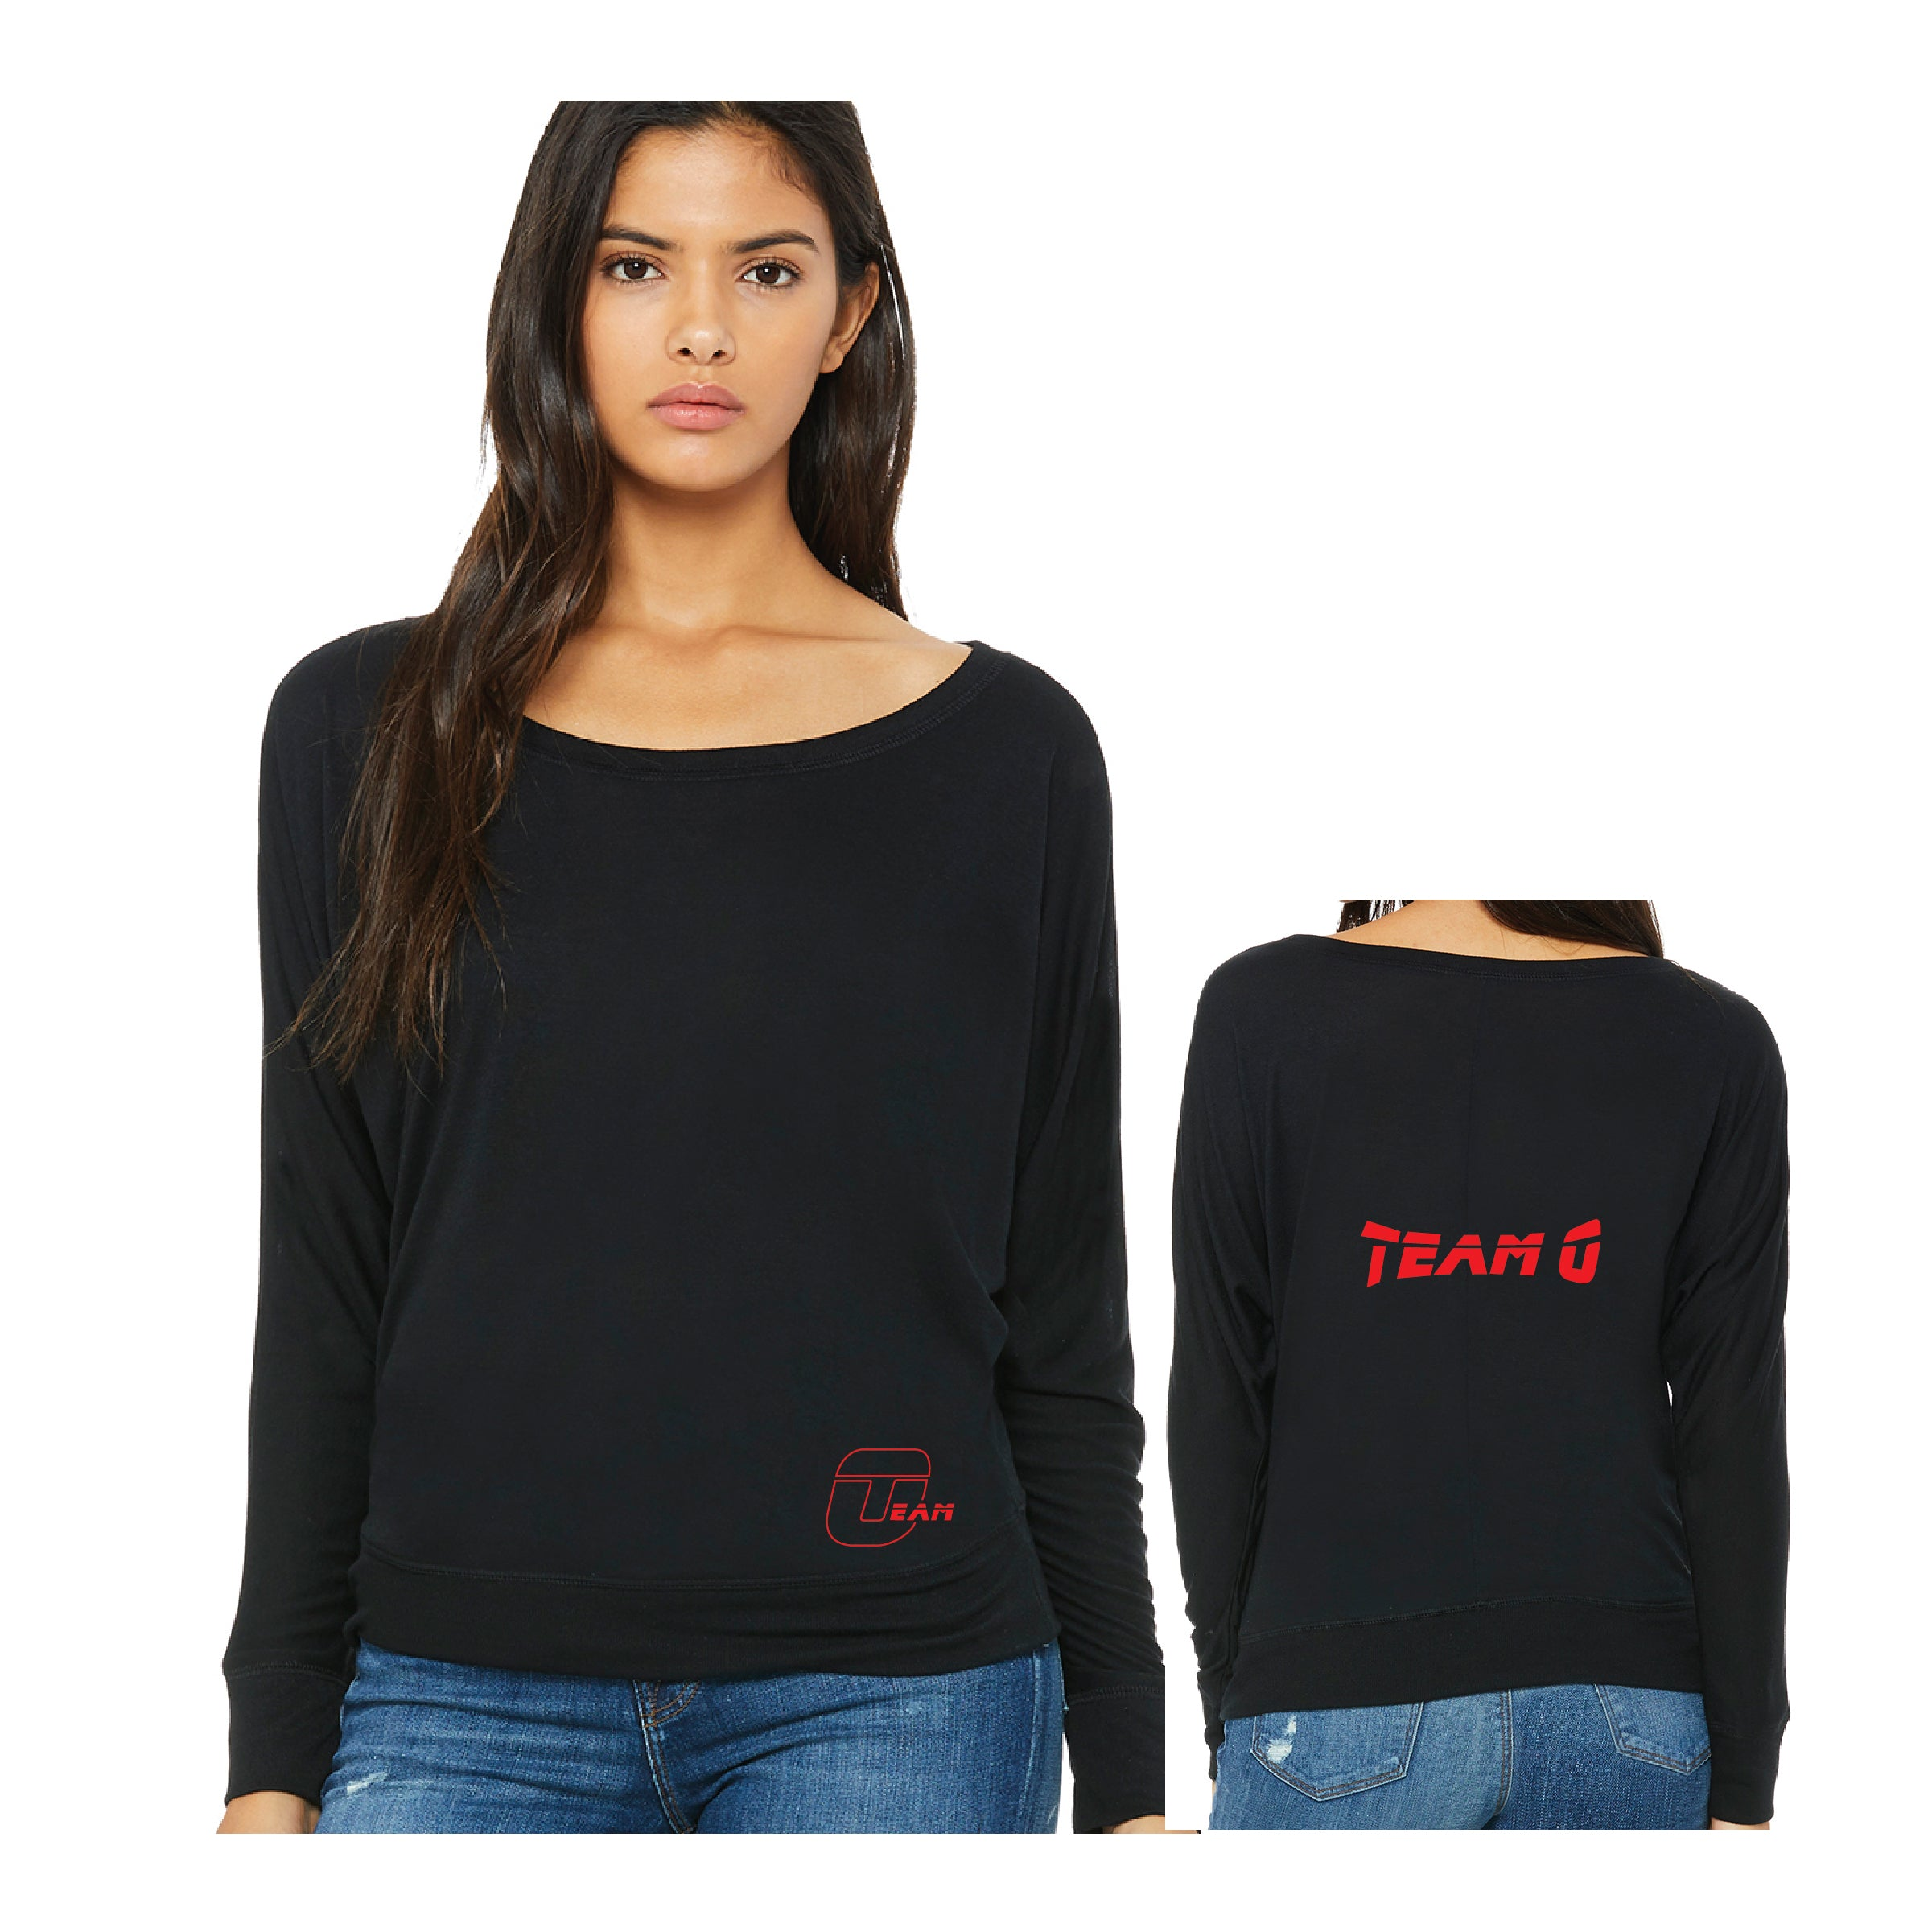 Team O Ladies' Flowy Long-Sleeve Off Shoulder T-Shirt